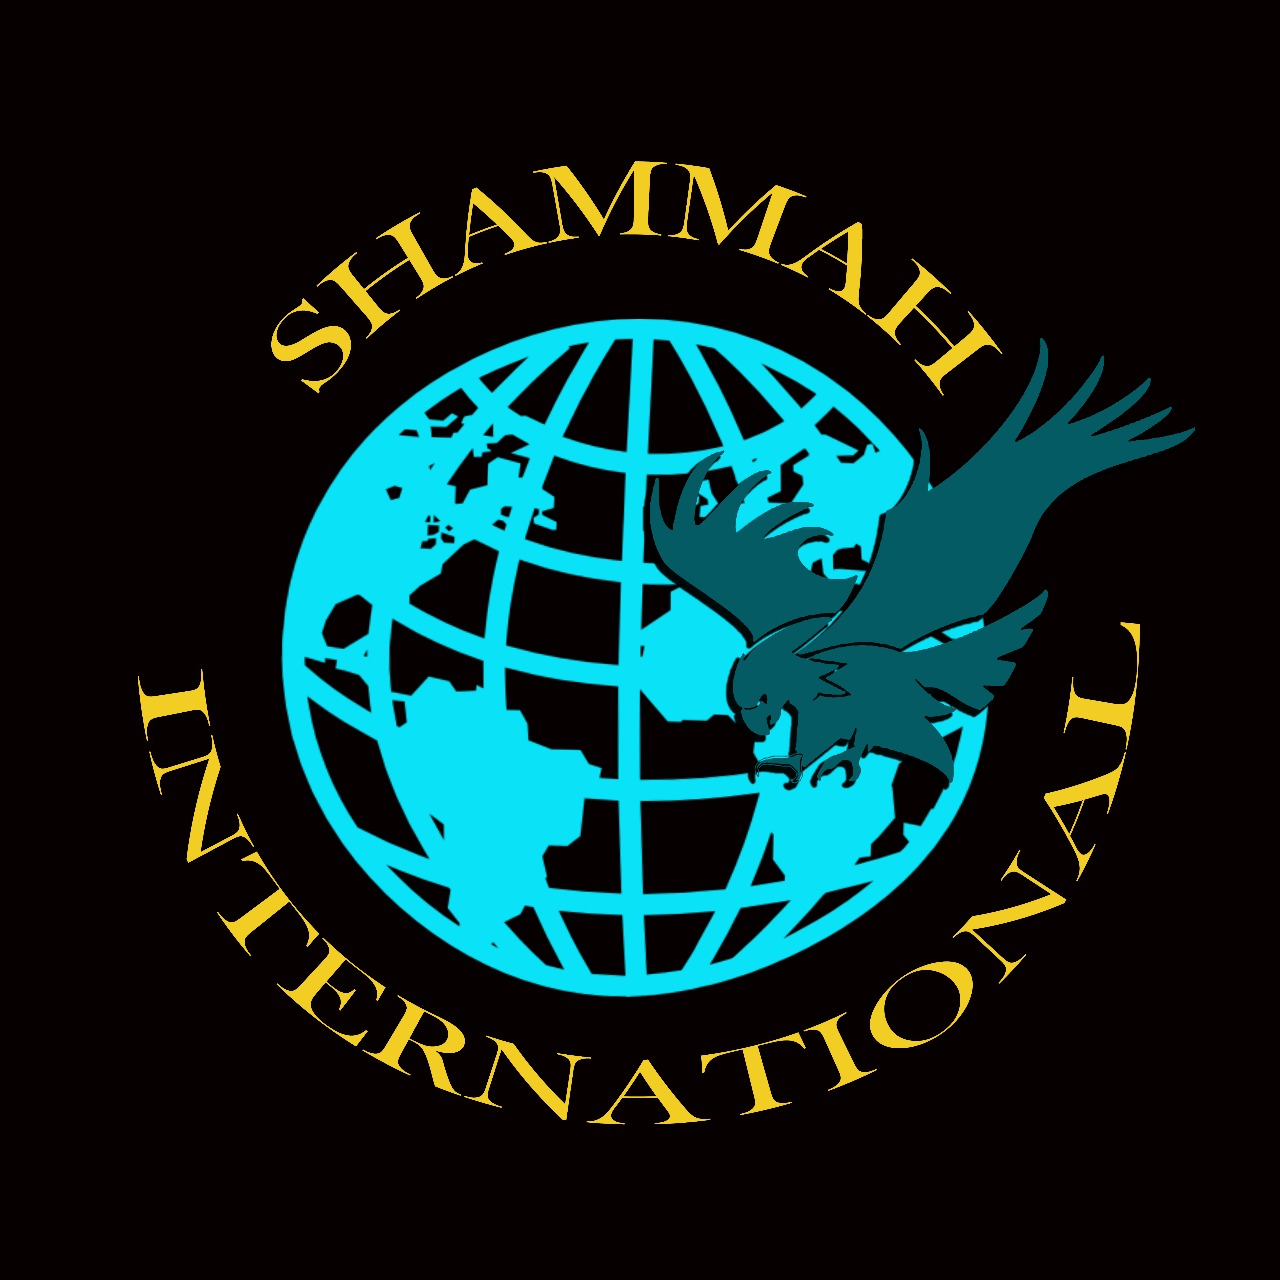 shammah international ltd